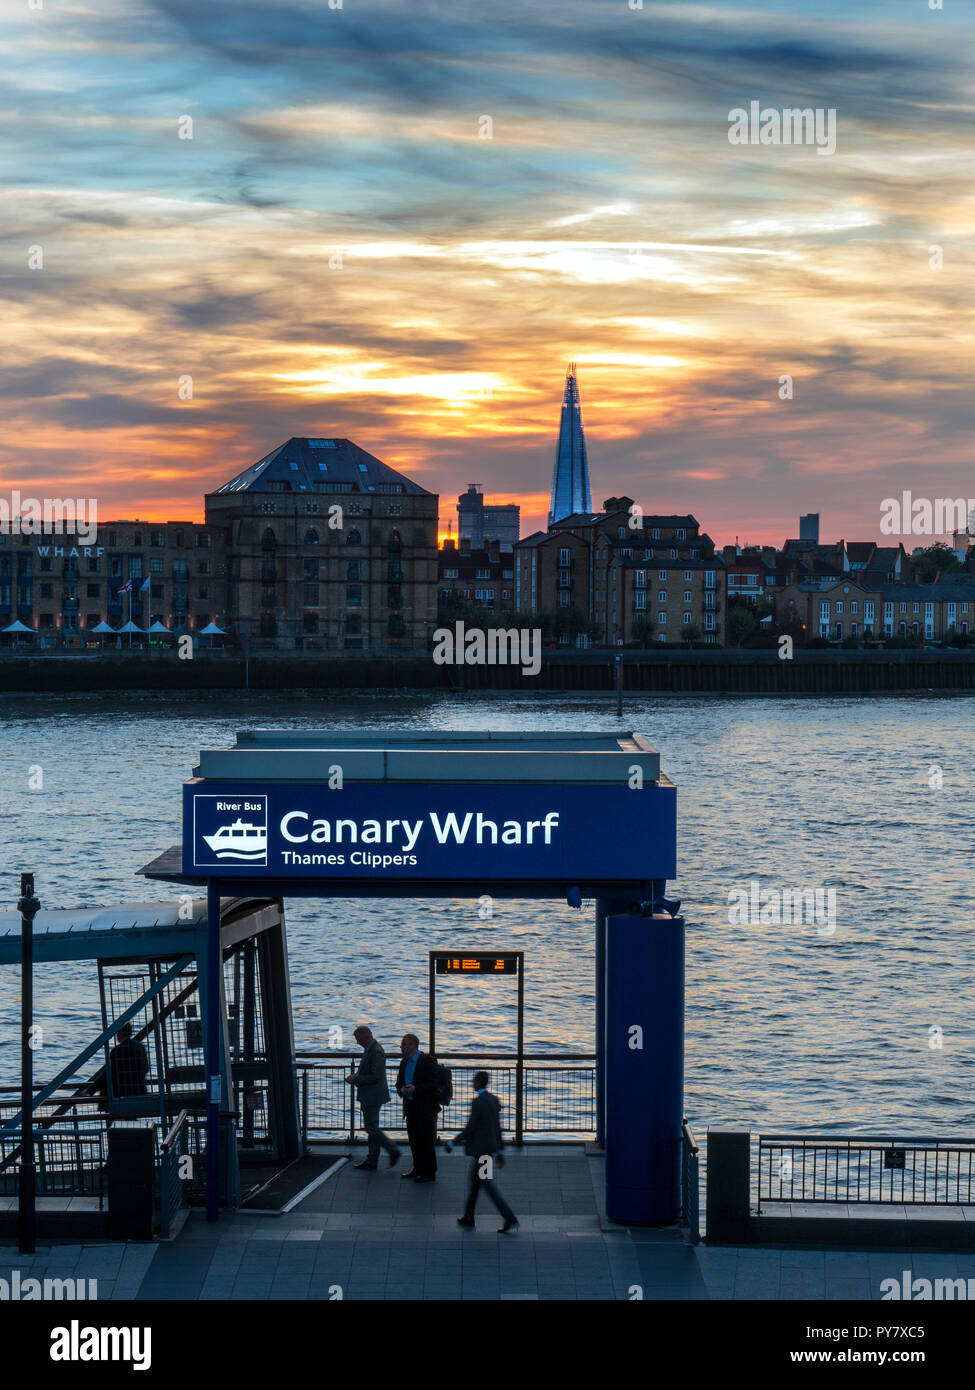 CANARY WHARF COMMUTERS Pier embarkation point for Thames Clipper River boats, Columbia Wharf Shard, & City buildings behind, Canary Wharf London UK - Stock Image